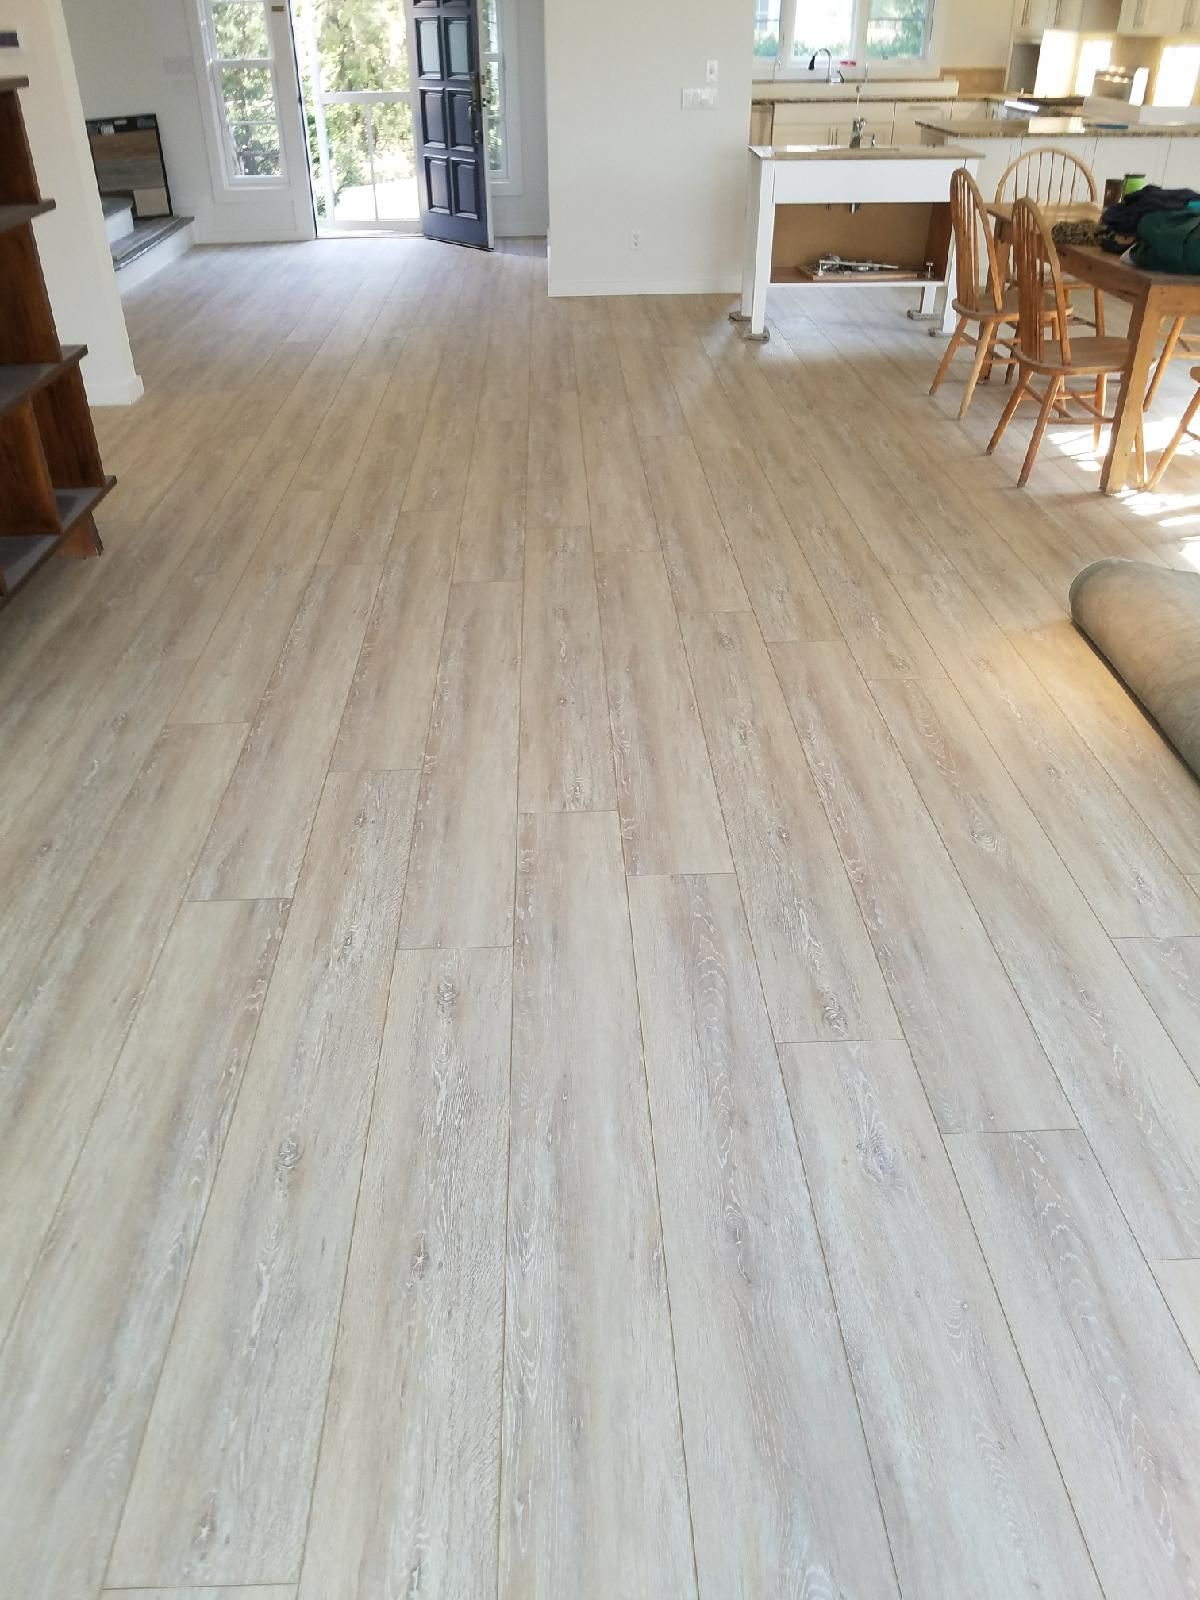 Wider View Of Install Lvp Coretec Plus Xl Enchancd In Everest Oak